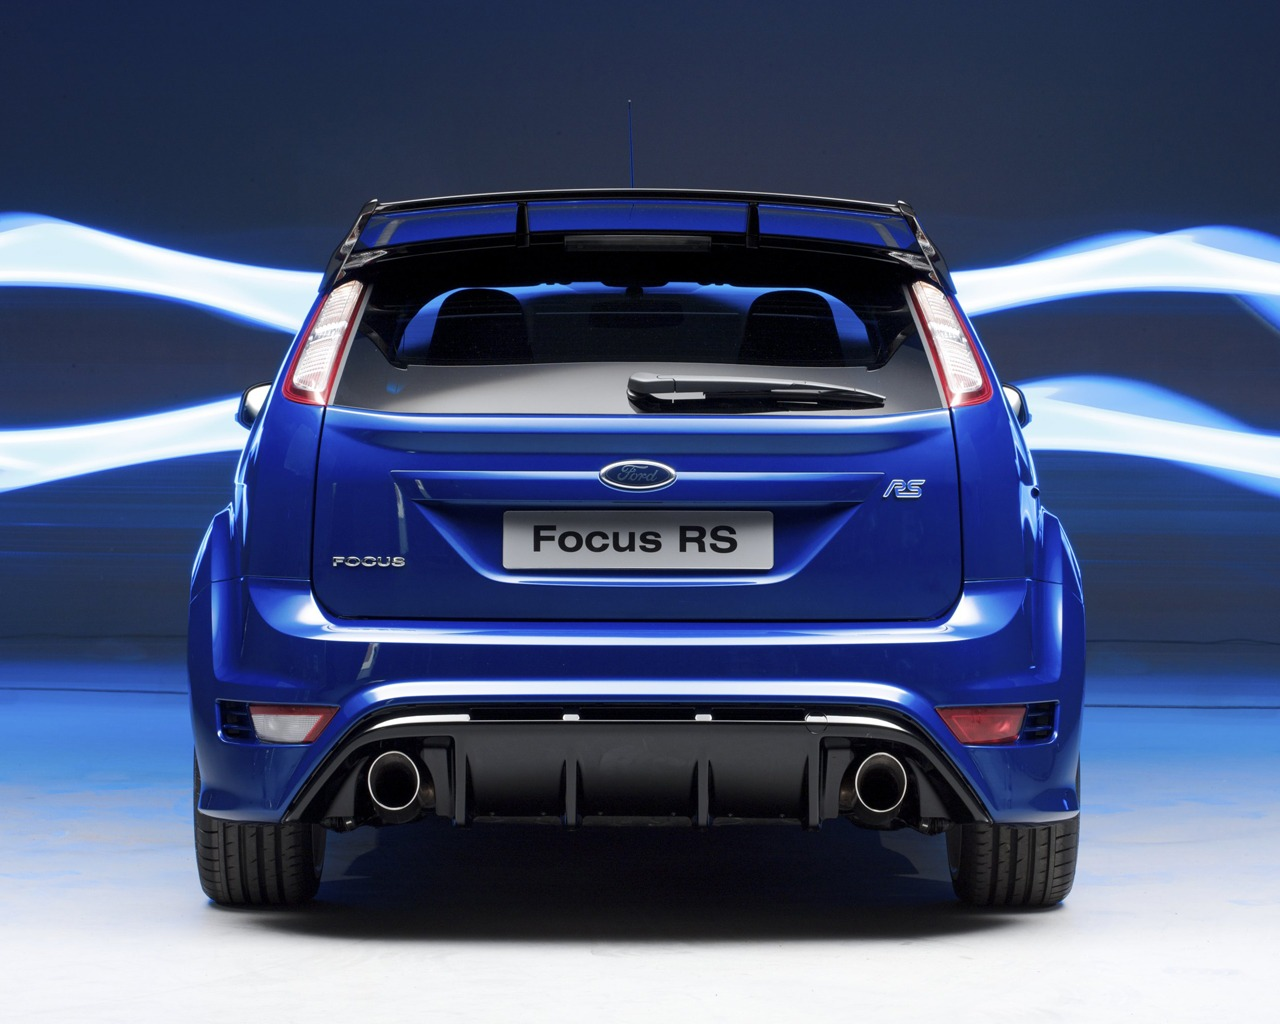 The 2009 Focus RS is also available in two other colors including Frozen White and Electric Blue (the color you see here).